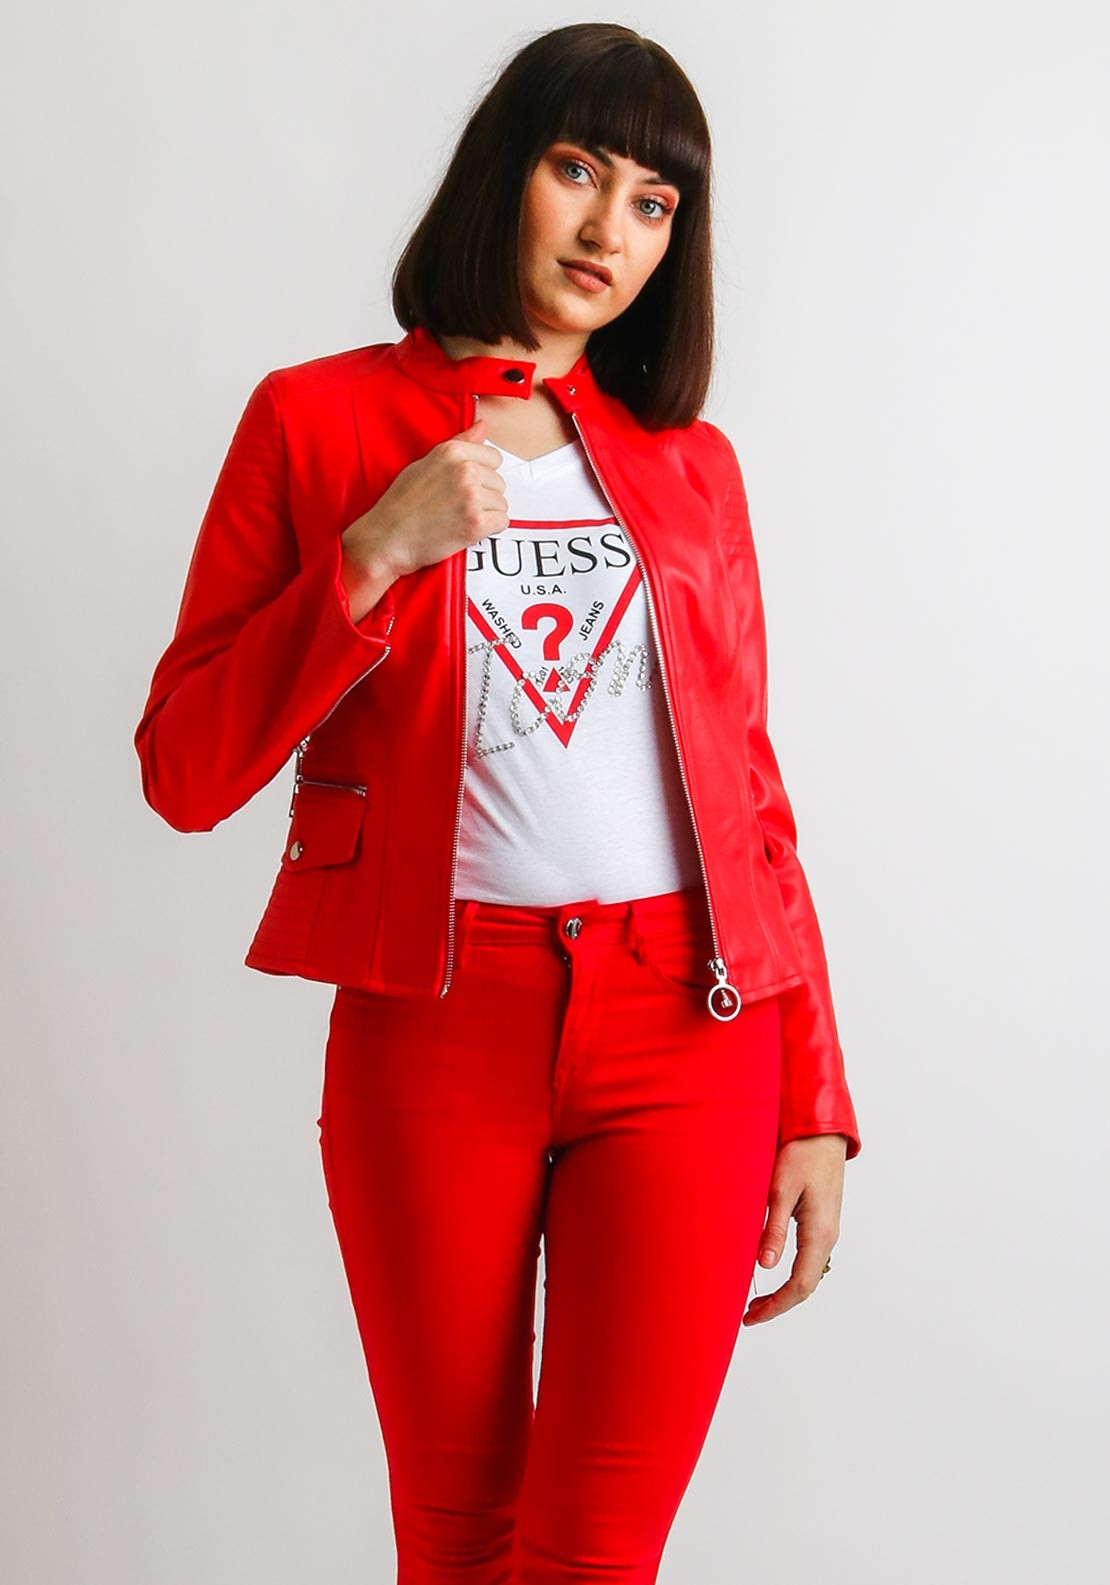 888dff36 Guess Womens Faux Leather Jacket, Red. Be the first to review this product